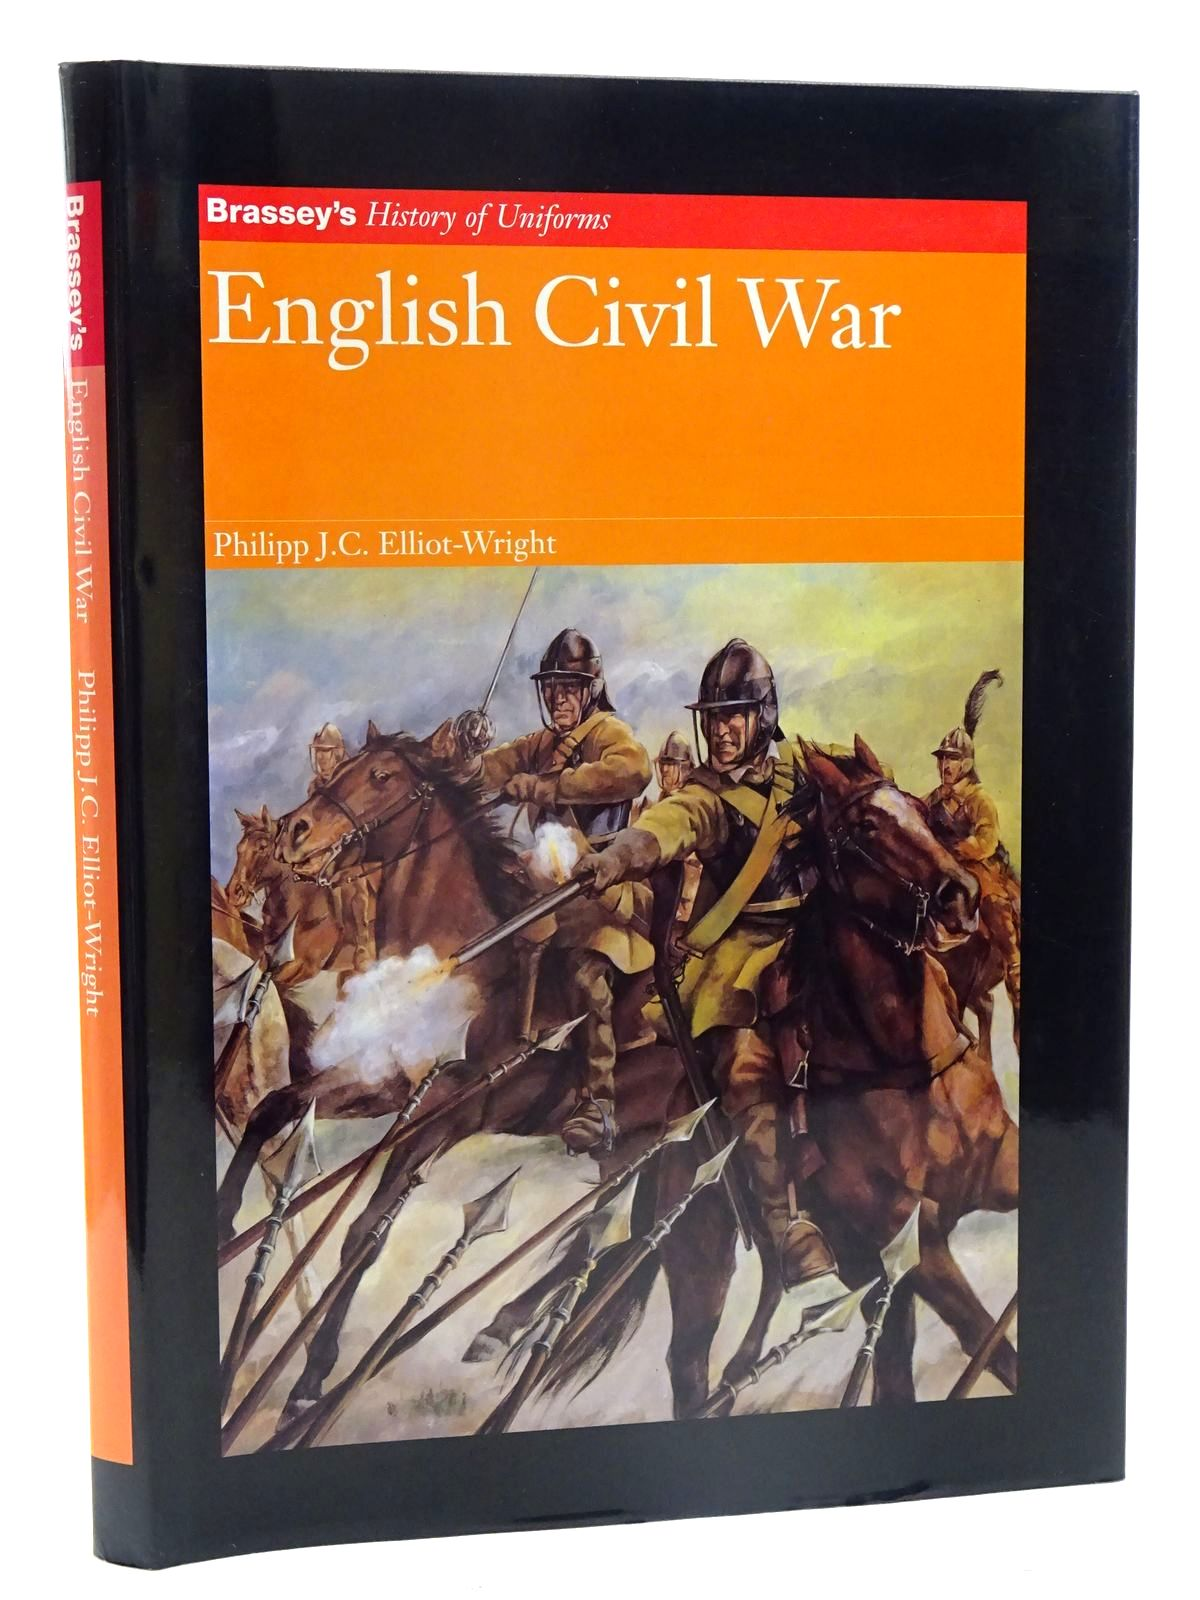 Photo of ENGLISH CIVIL WAR written by Elliot-Wright, Philipp J.C. illustrated by Hook, Christa published by Brassey's (STOCK CODE: 2125467)  for sale by Stella & Rose's Books